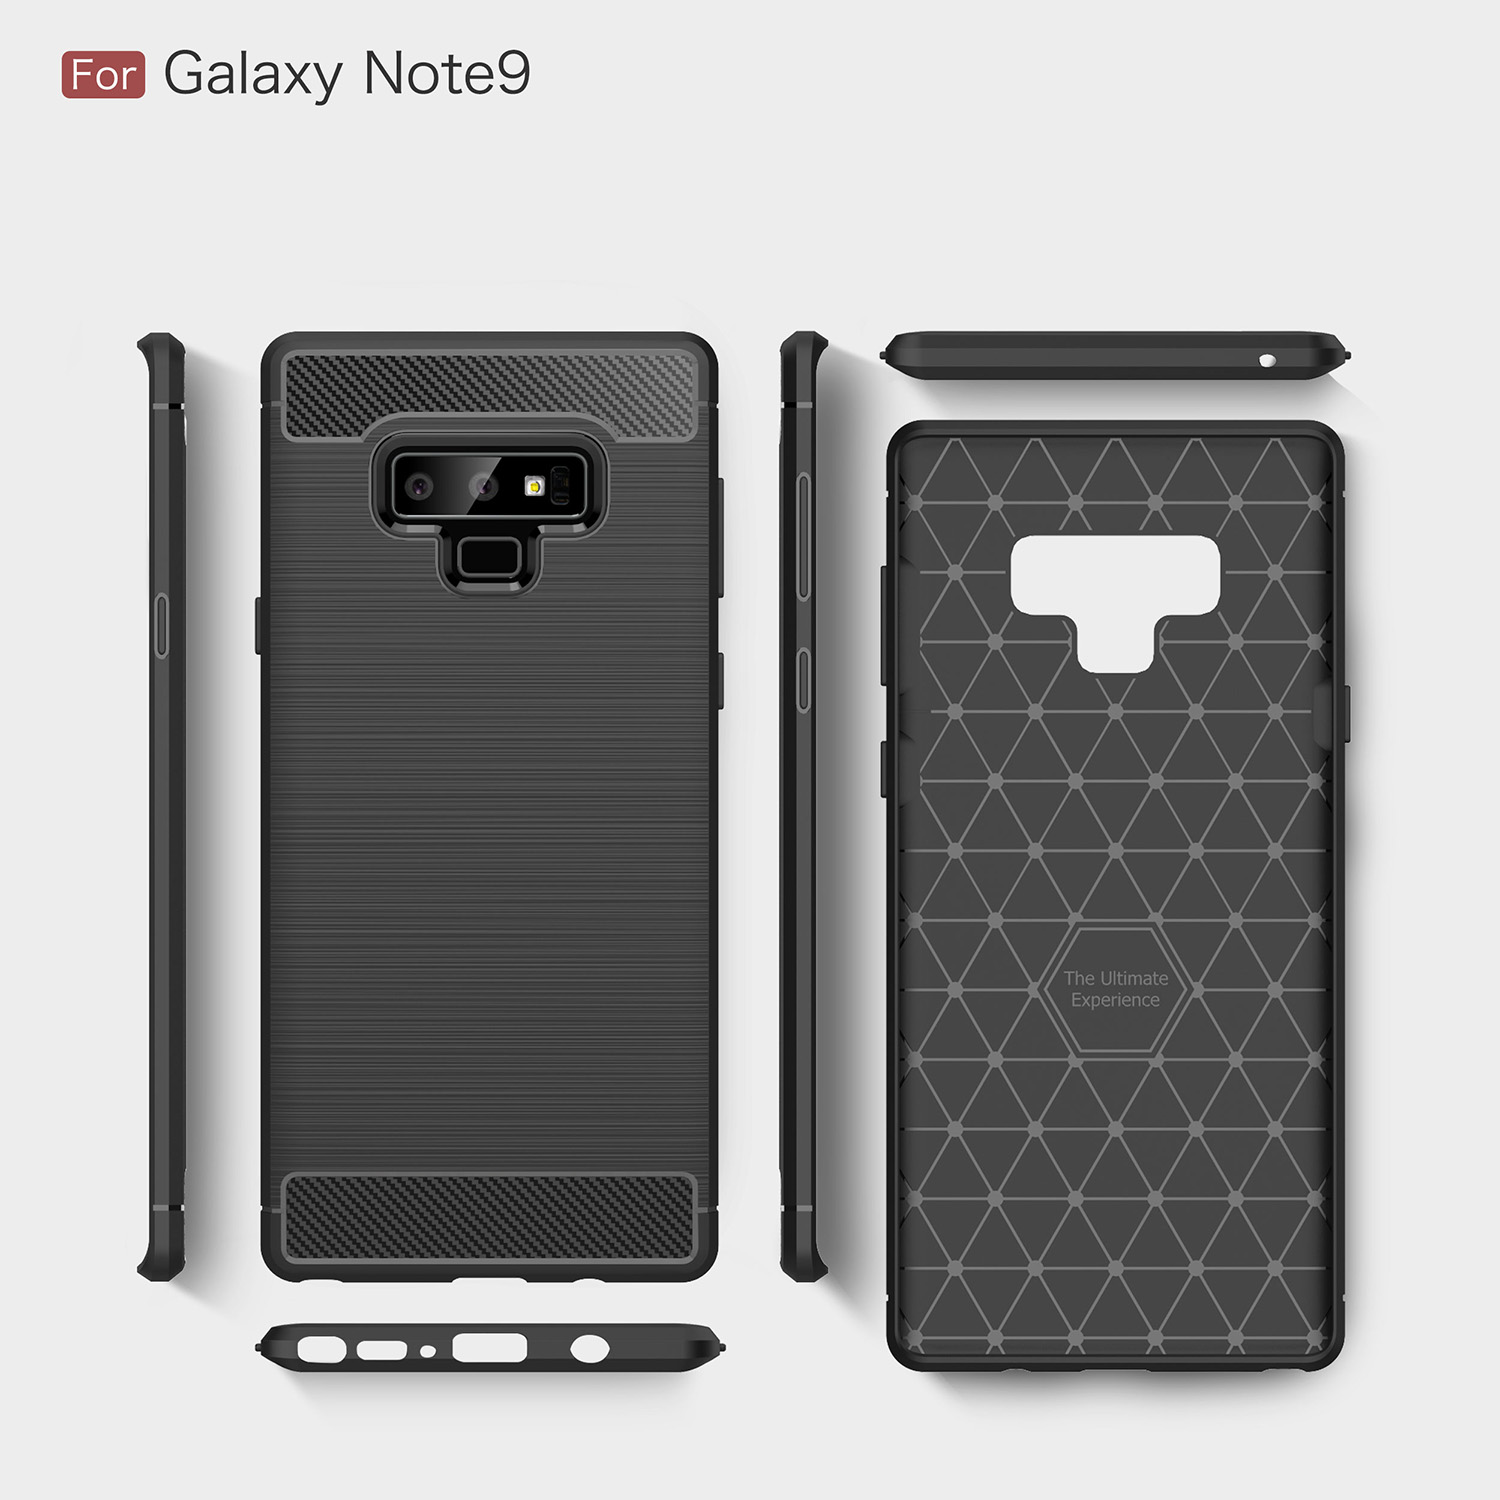 Business Carbon Fiber Case For Samsung Galaxy S10 Lite/Plus A8S A750 S9 S8 A9S A6 J4 J6 Plus J8 2018 Note9 8 Soft Silicone Cover